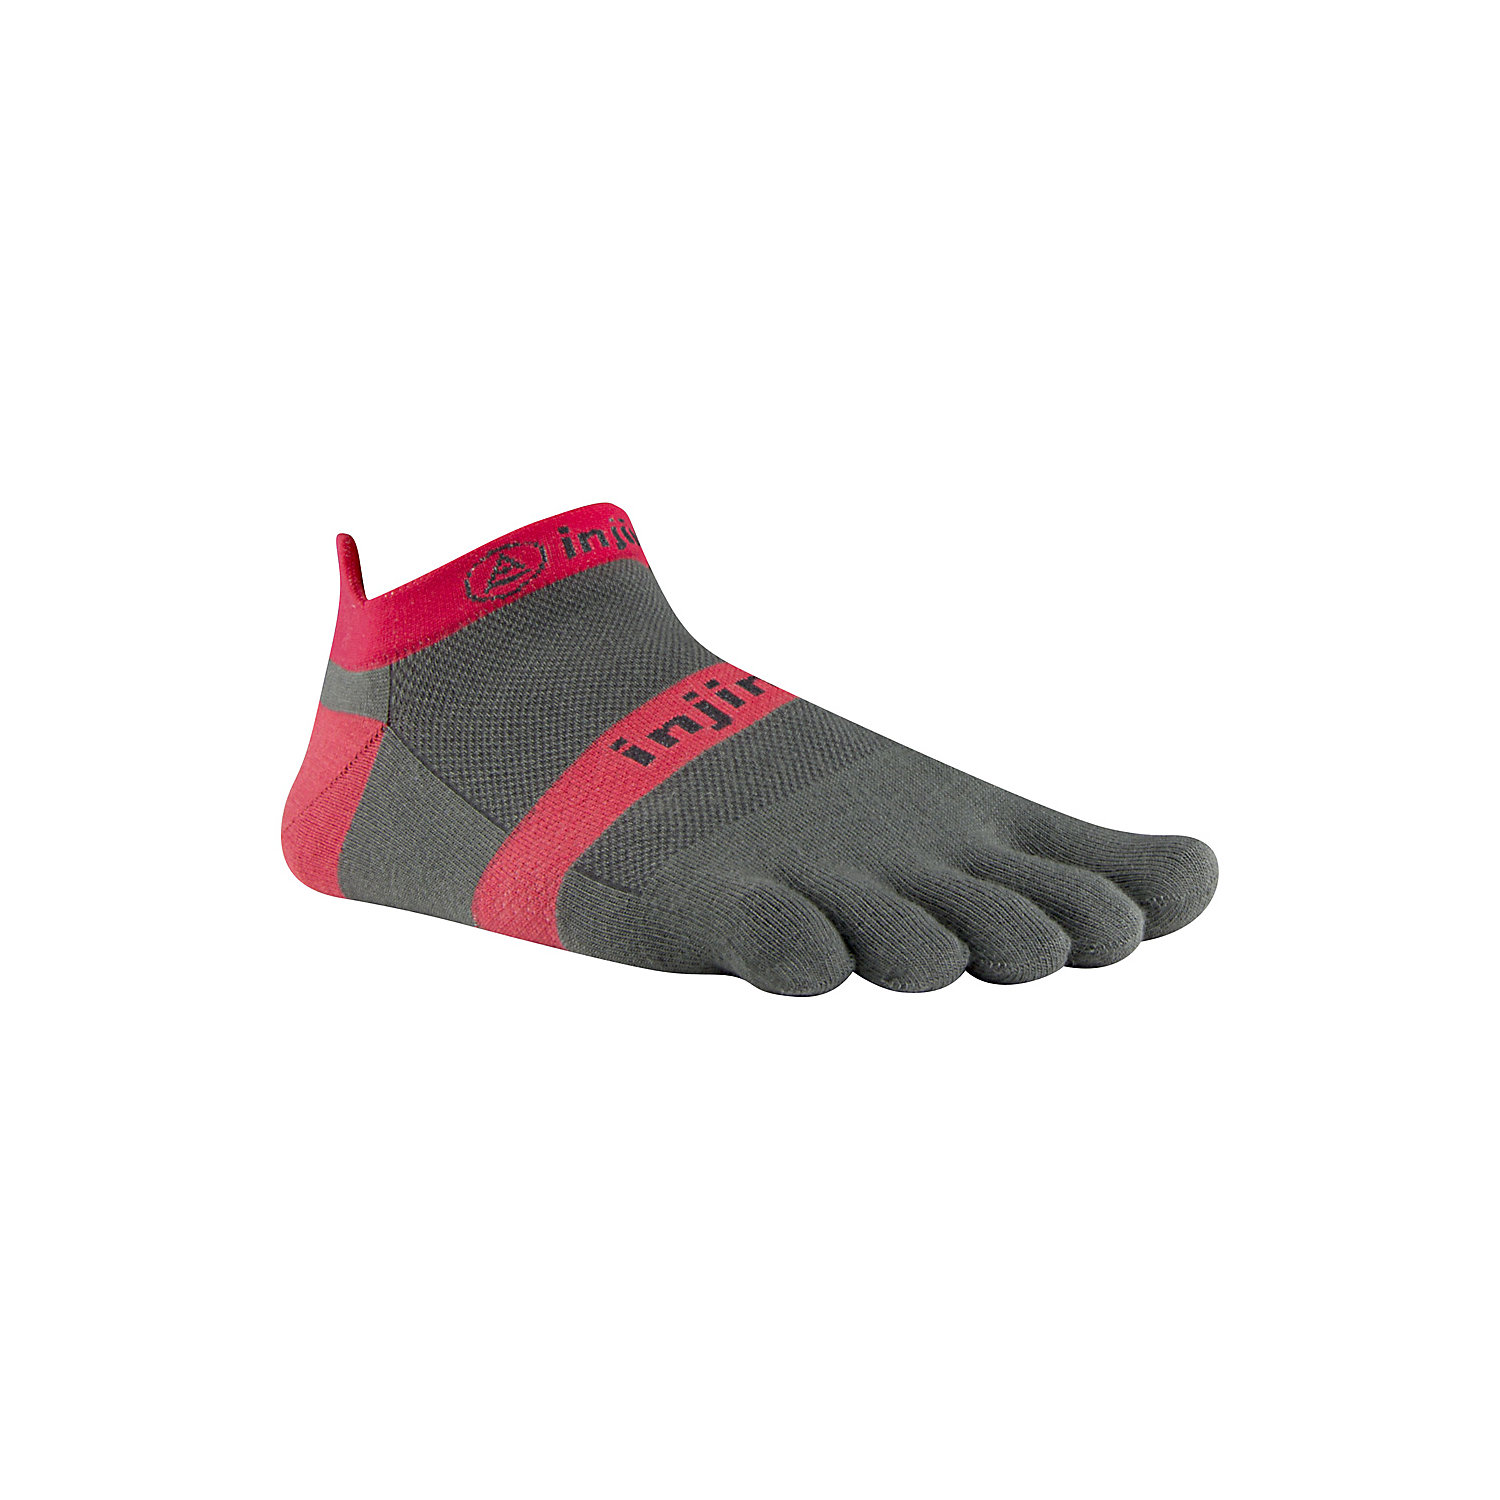 Injinji Run Light Weight No show Gray